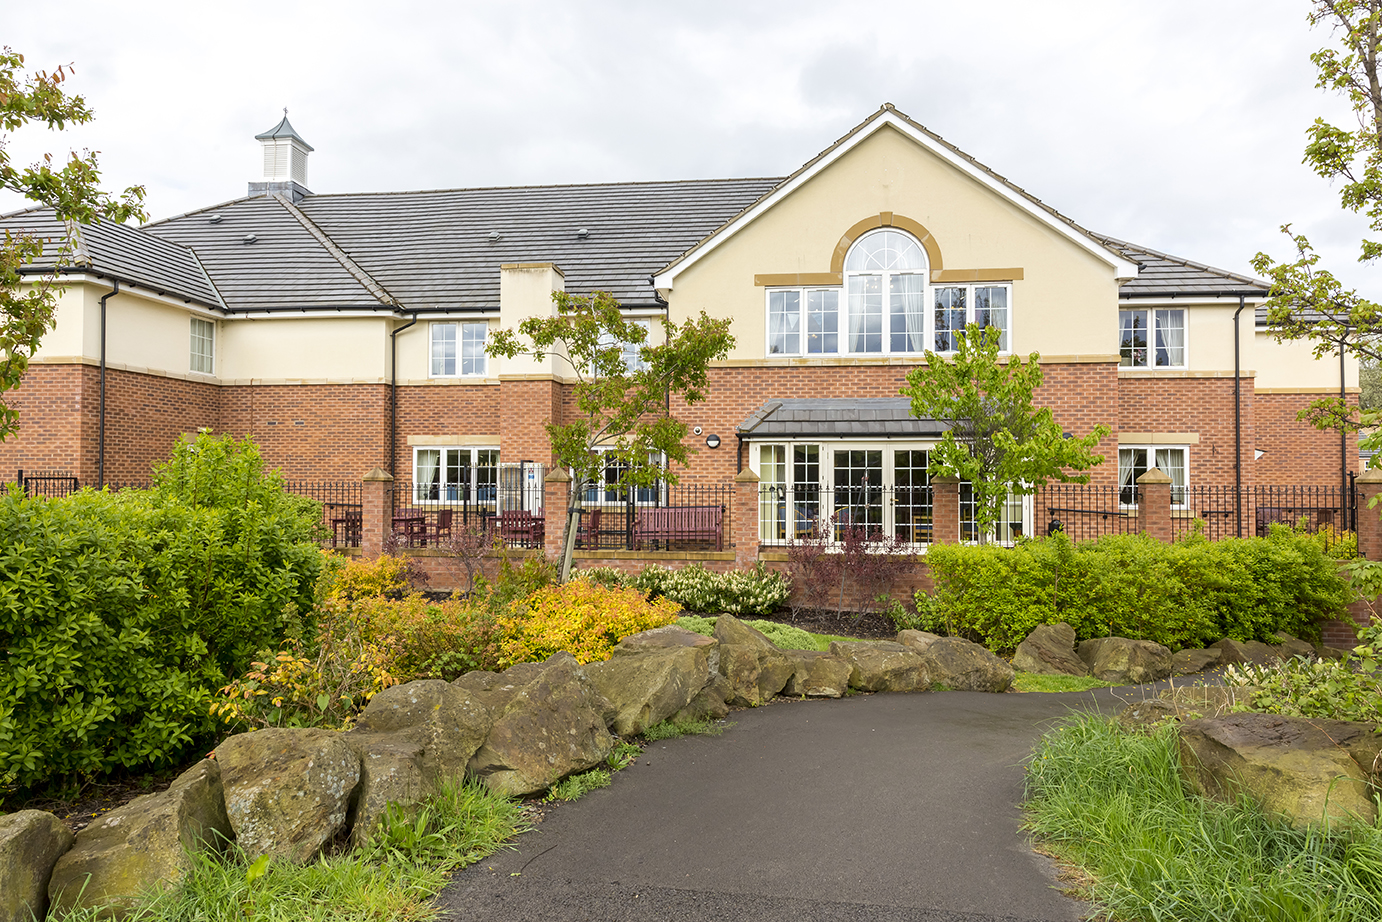 Care Homes In Cleckheaton